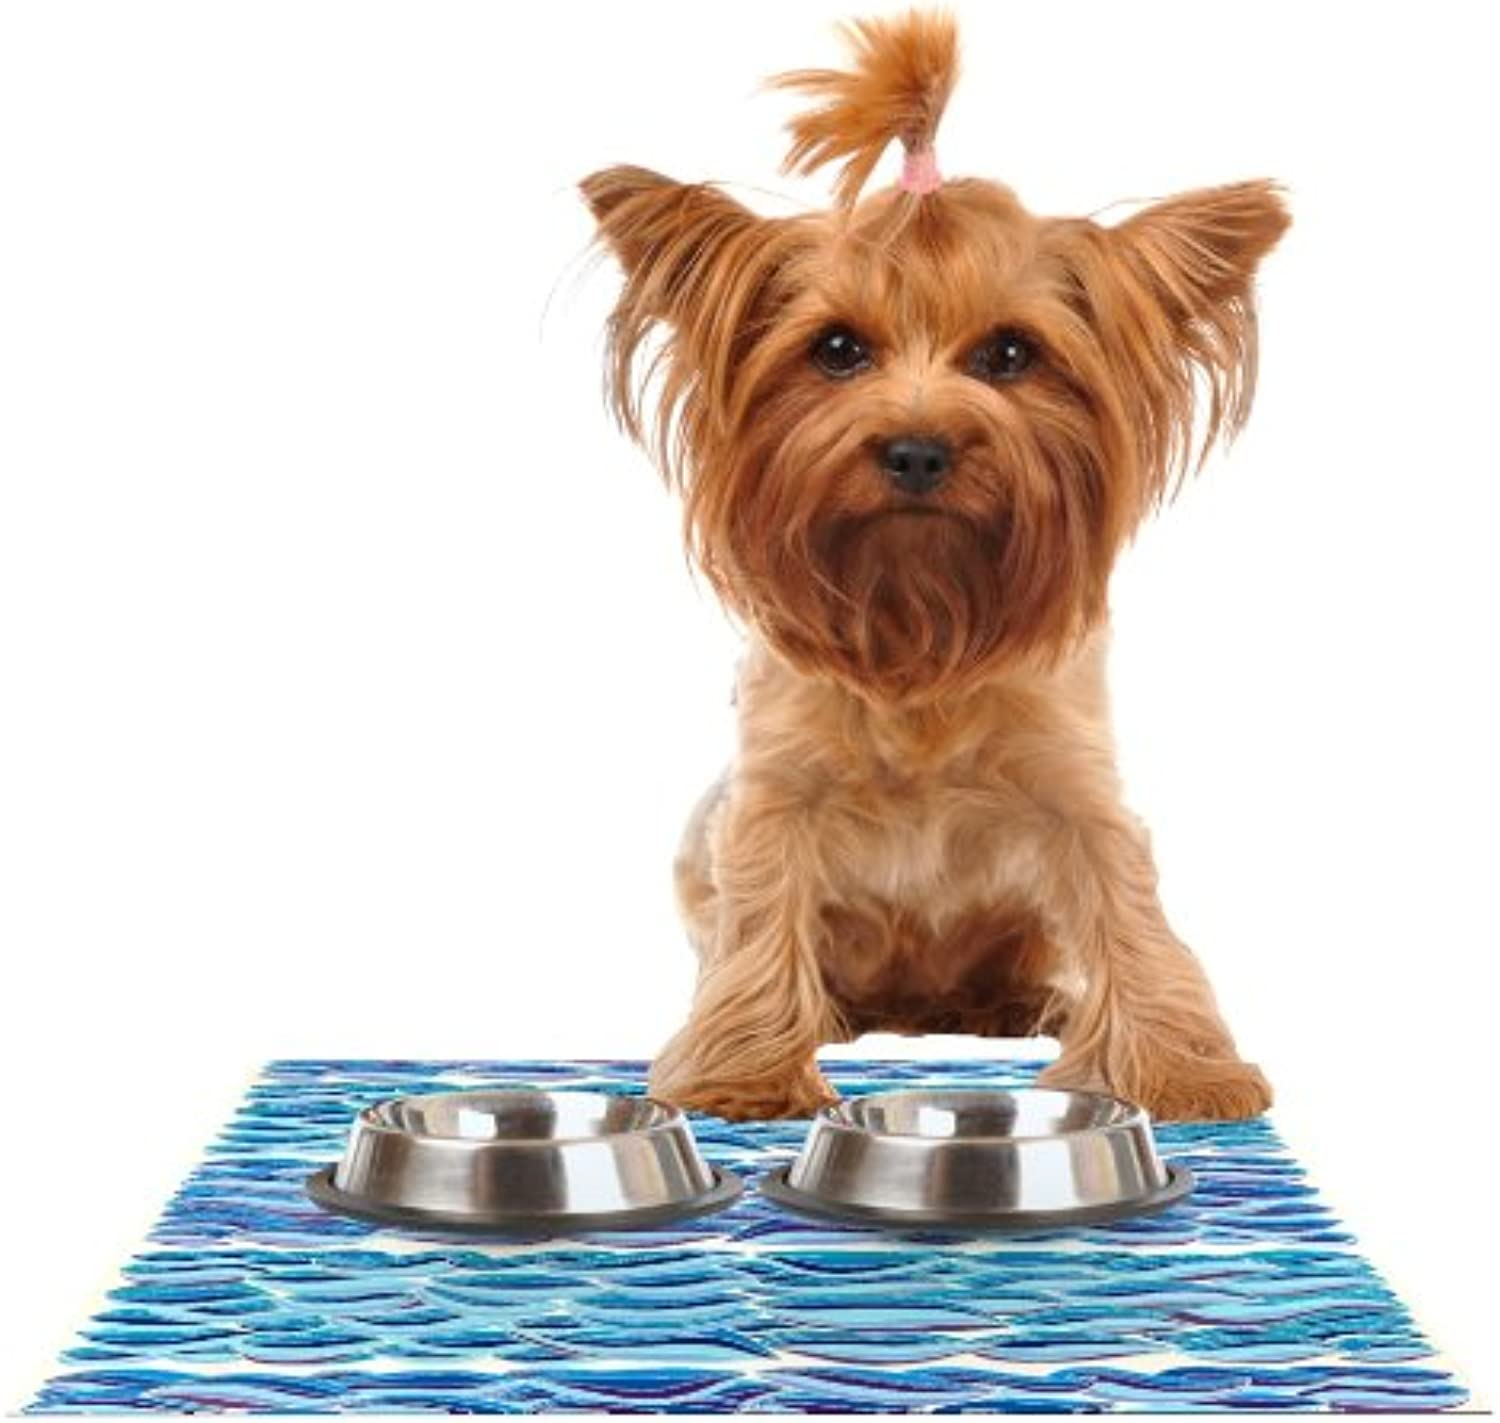 Kess InHouse Pom Graphic Design The High Sea  Feeding Mat for Pet Bowl, 18 by 13Inch